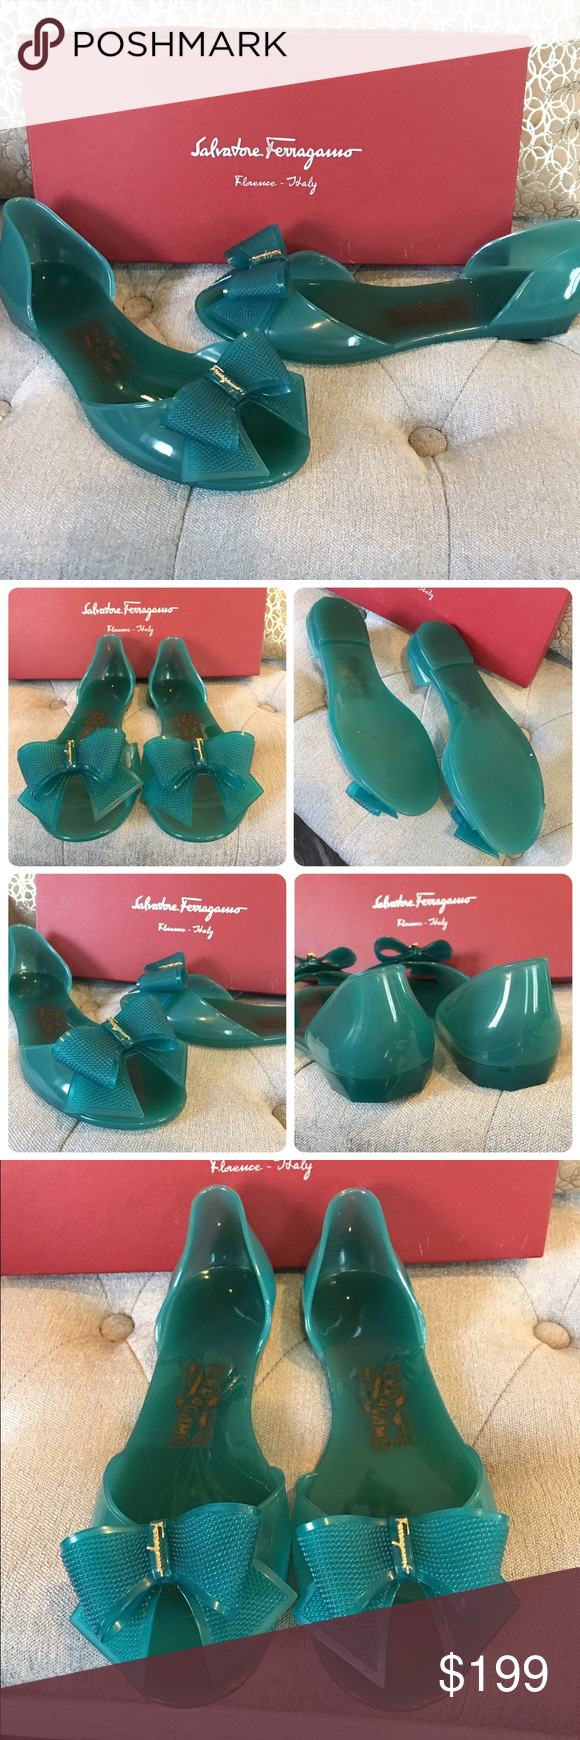 Ferragamo Teal Barbados Jelly Bow Flats US 8 Authentic Salvatore Ferragamo Barbados cut out jelly bow flats. Excellent condition with box. Ferragamo is in gold on the bow. EU sz 38 and fits true to size US 8. Minimal signs of use. Salvatore Ferragamo Shoes Sandals